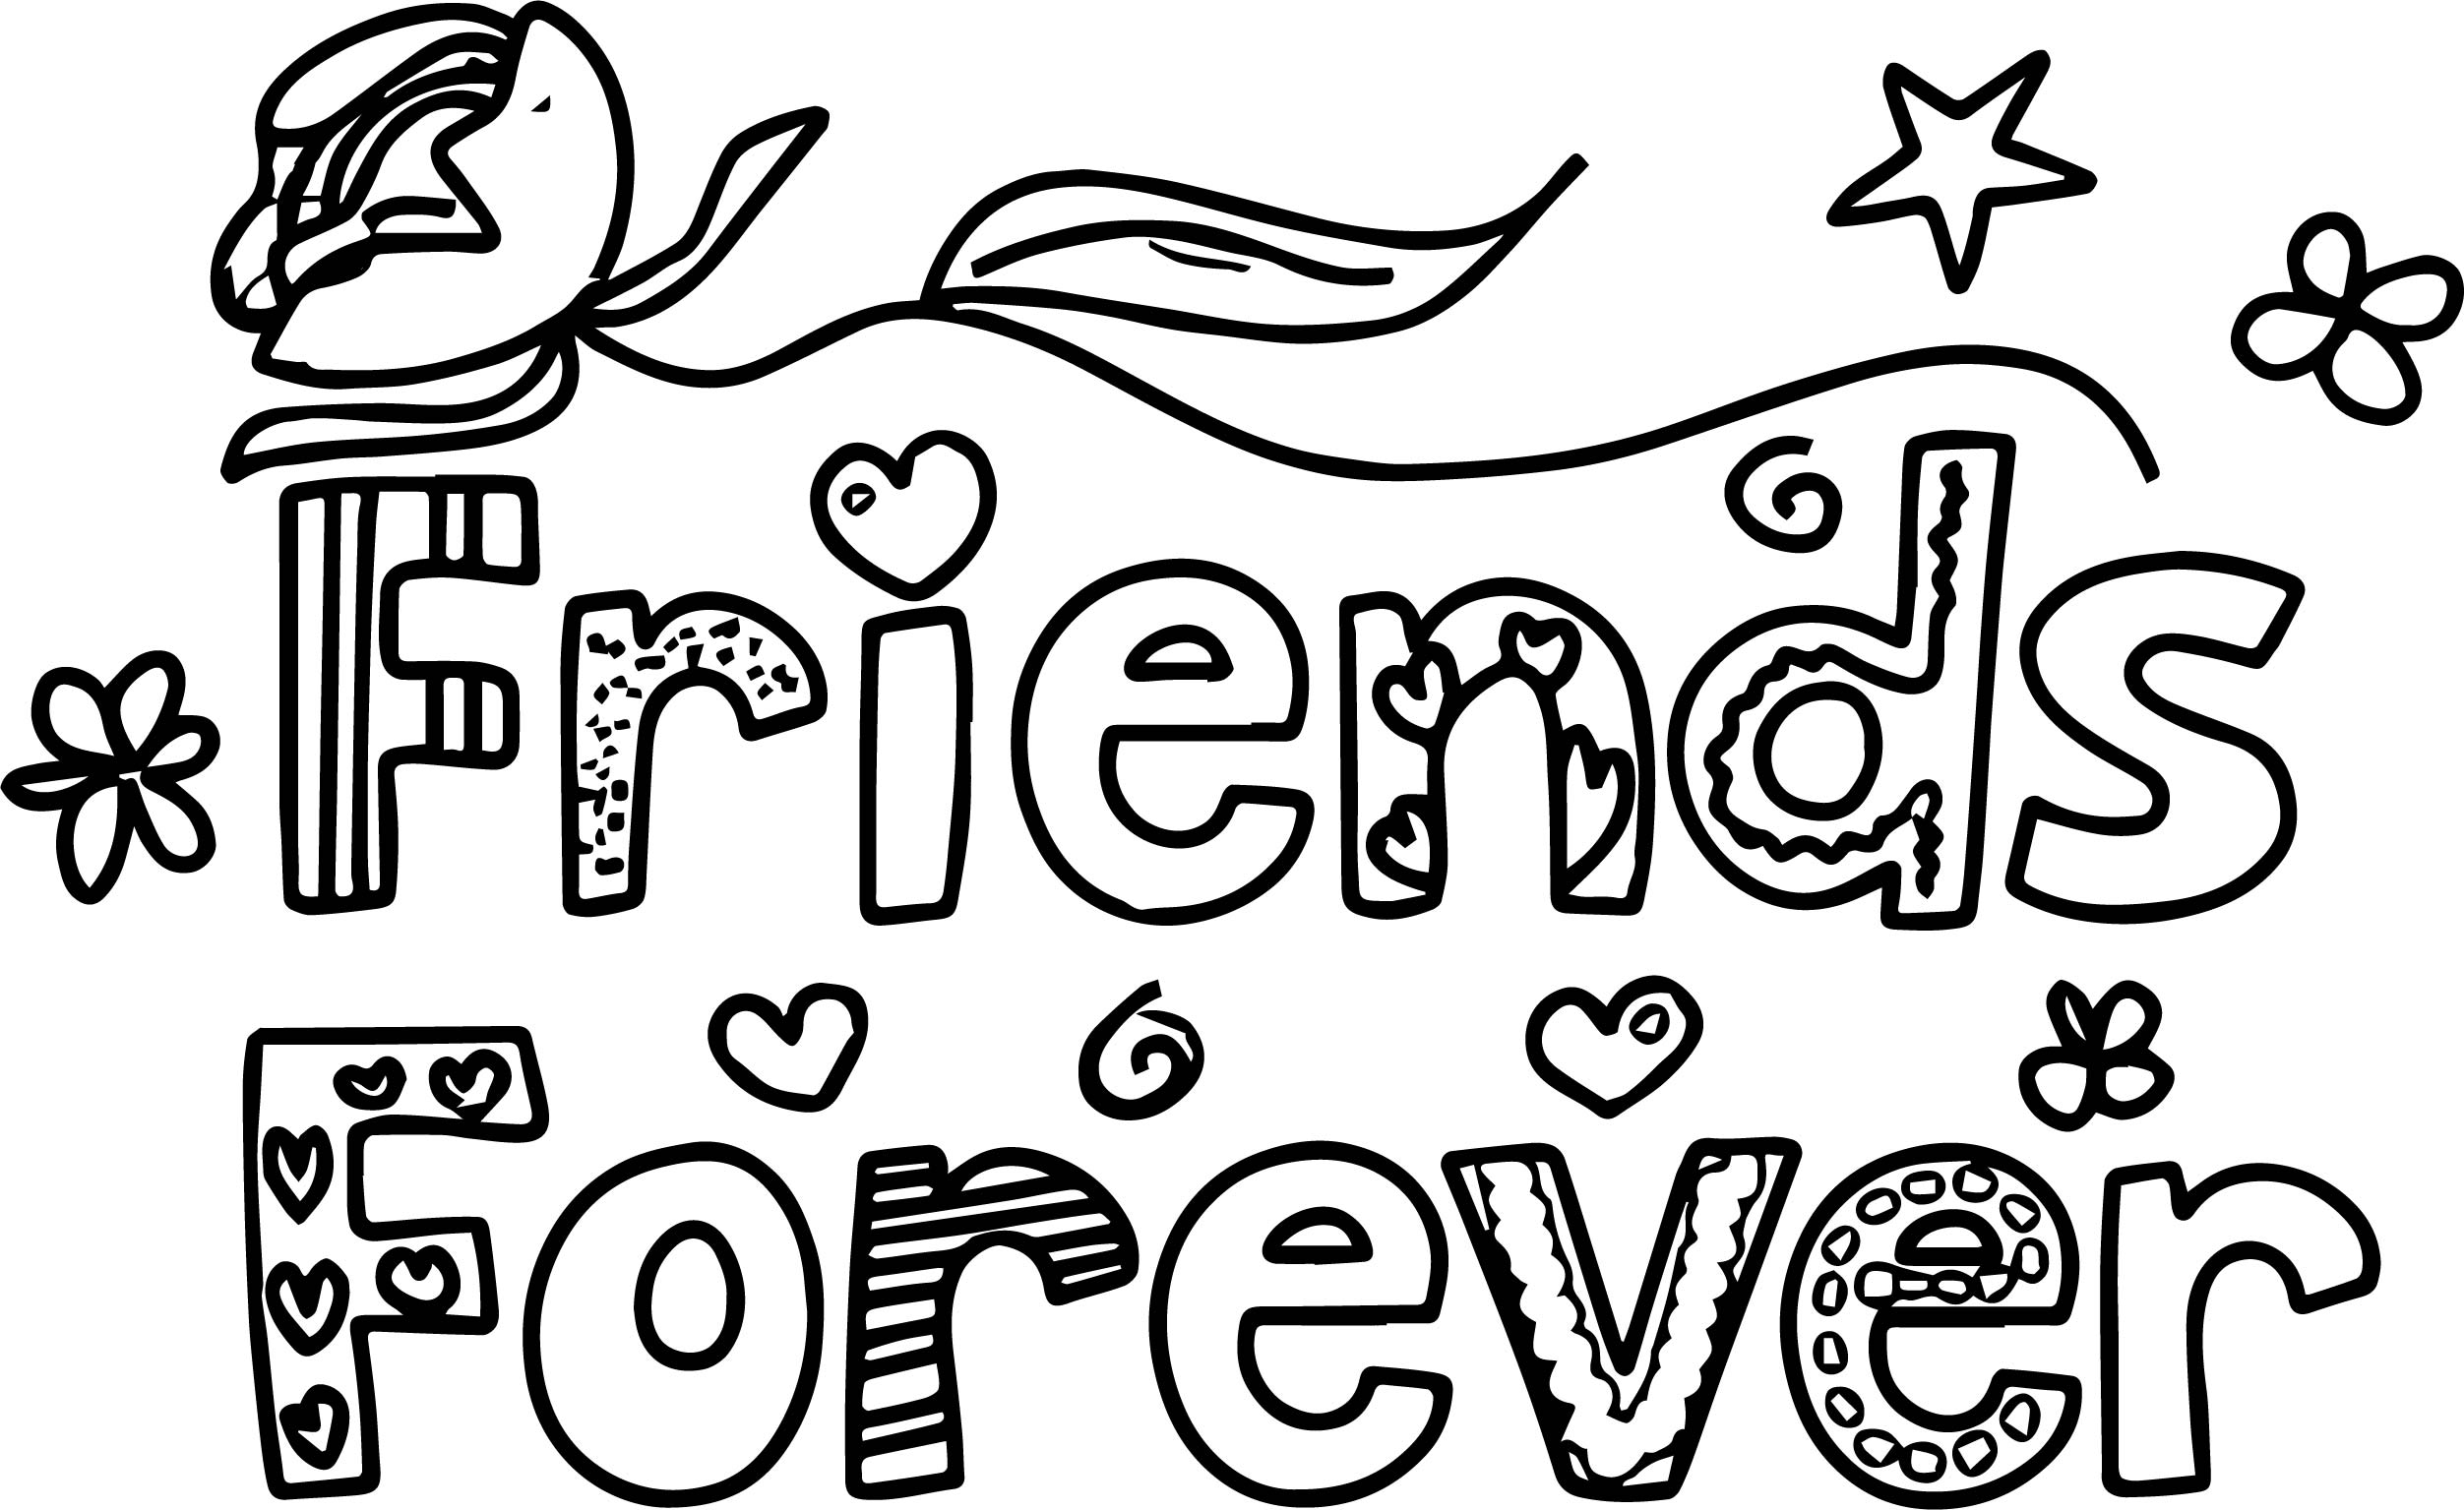 friendship coloring page - pal of a colorful friends forever words with designs